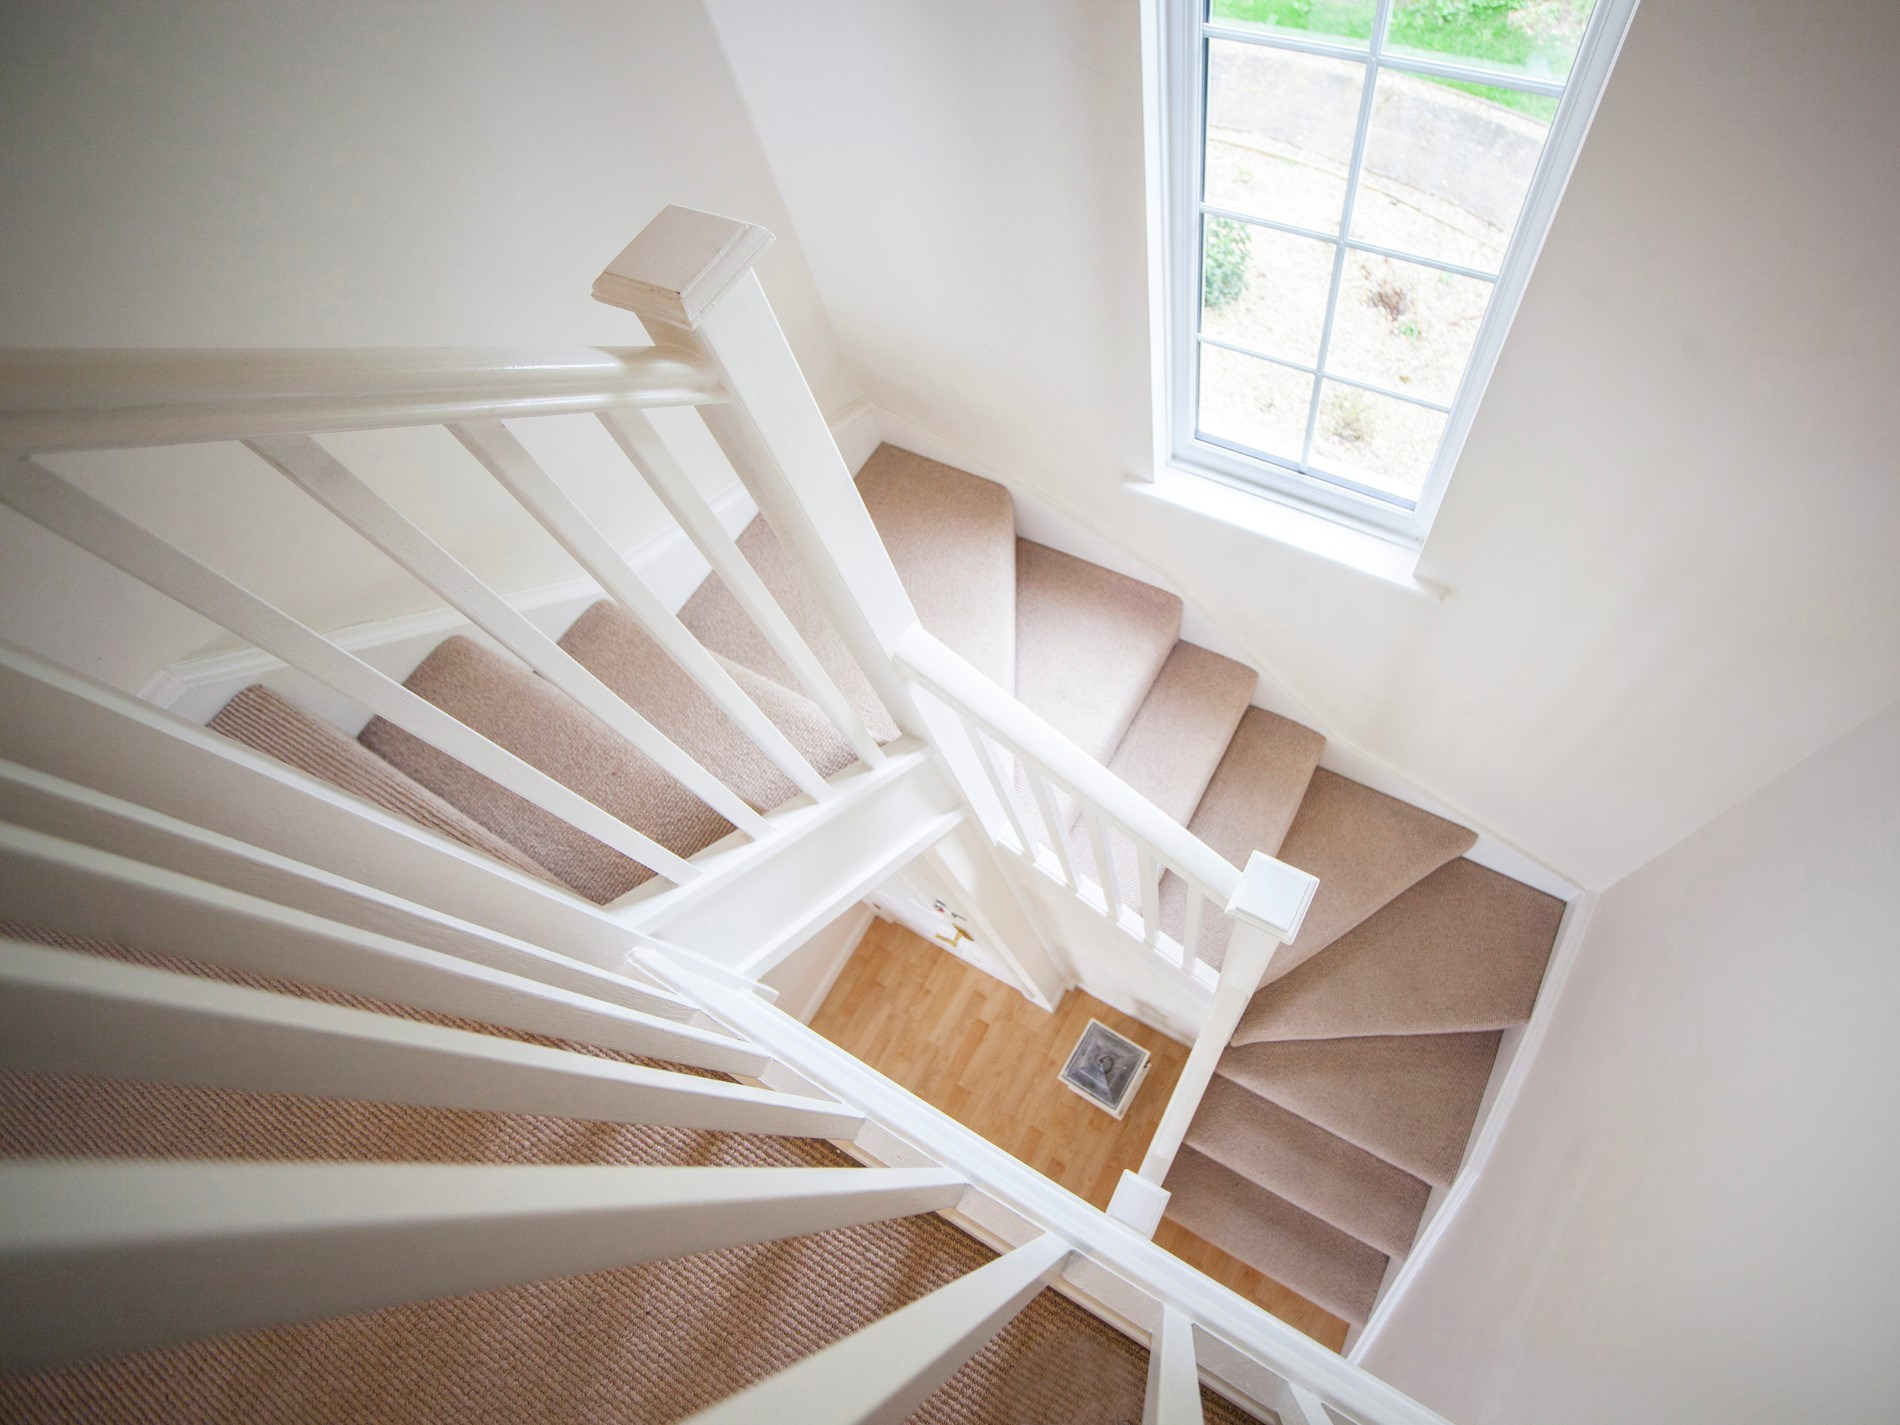 Propert y staircase